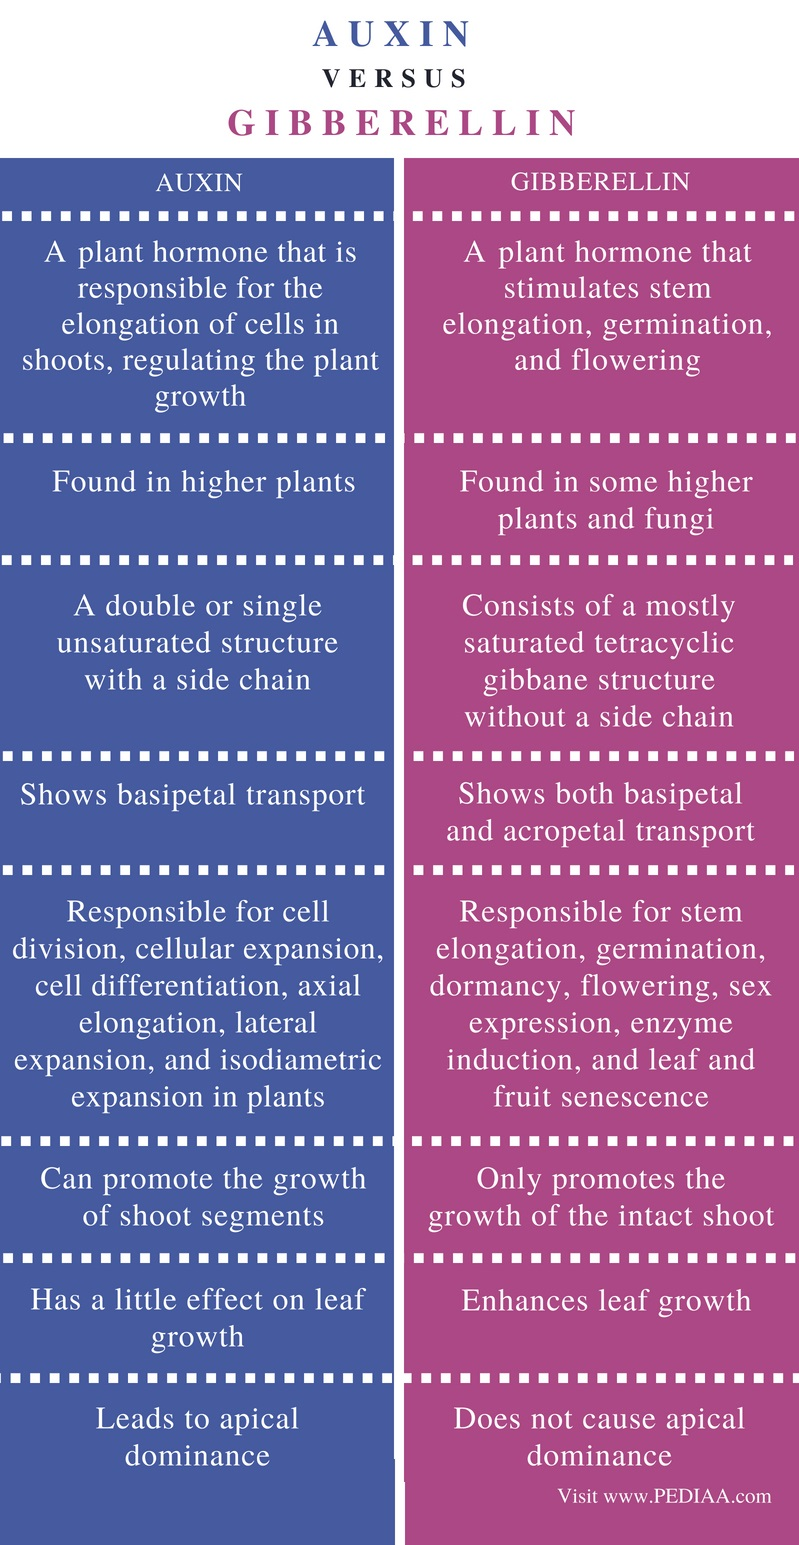 Difference Between Auxin and Gibberellin - Comparison Summary